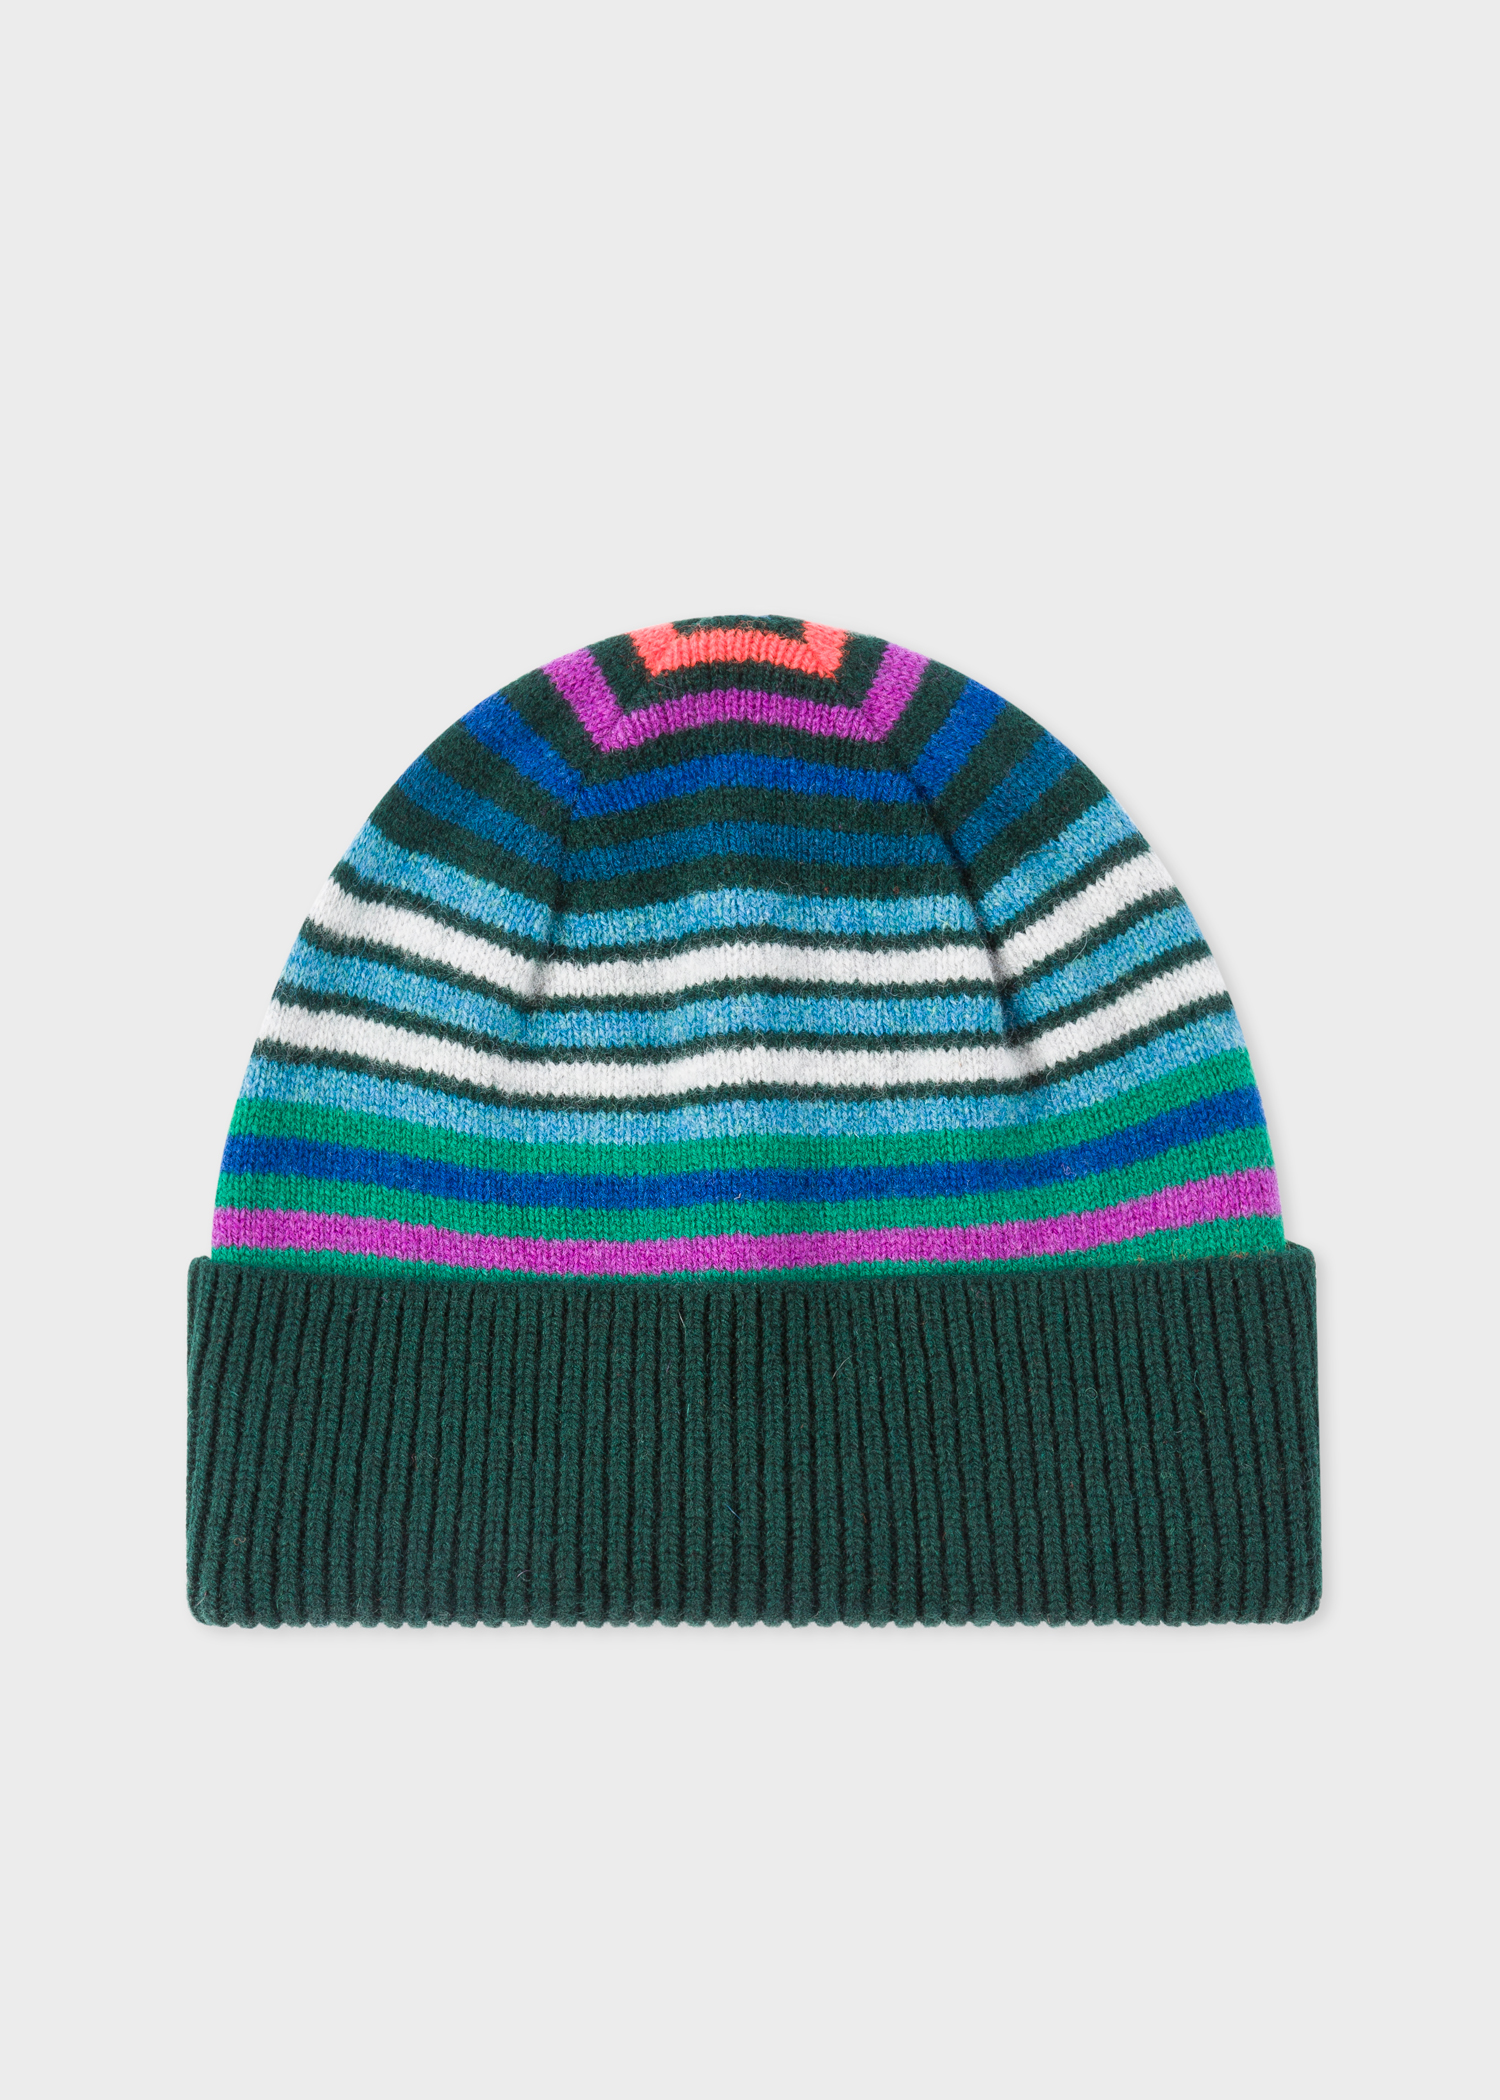 Men s Dark Green Striped Wool Beanie Hat - Paul Smith Europe 4bf9592d1dd